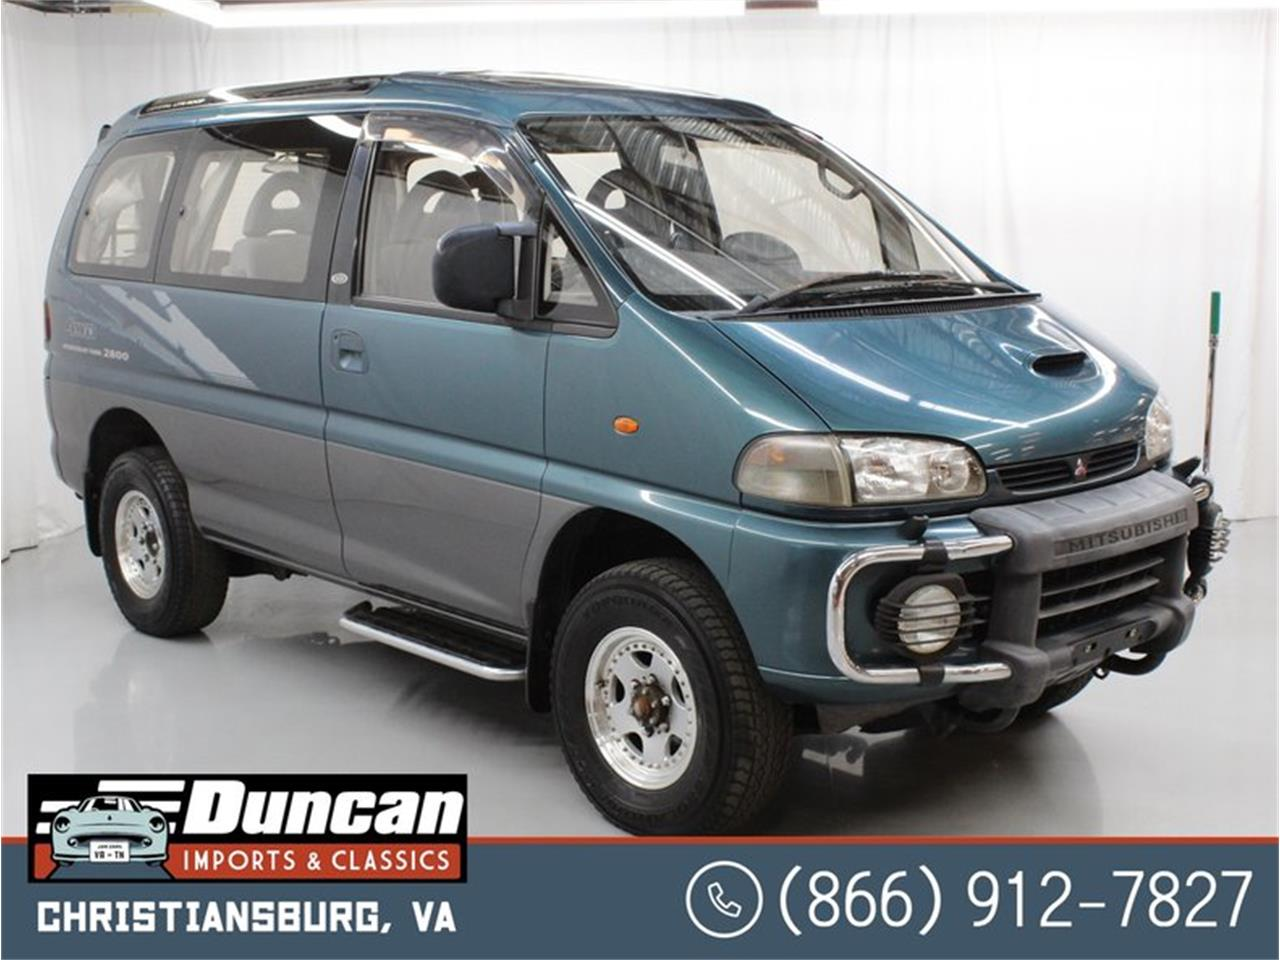 1994 Mitsubishi Delica (CC-1415695) for sale in Christiansburg, Virginia